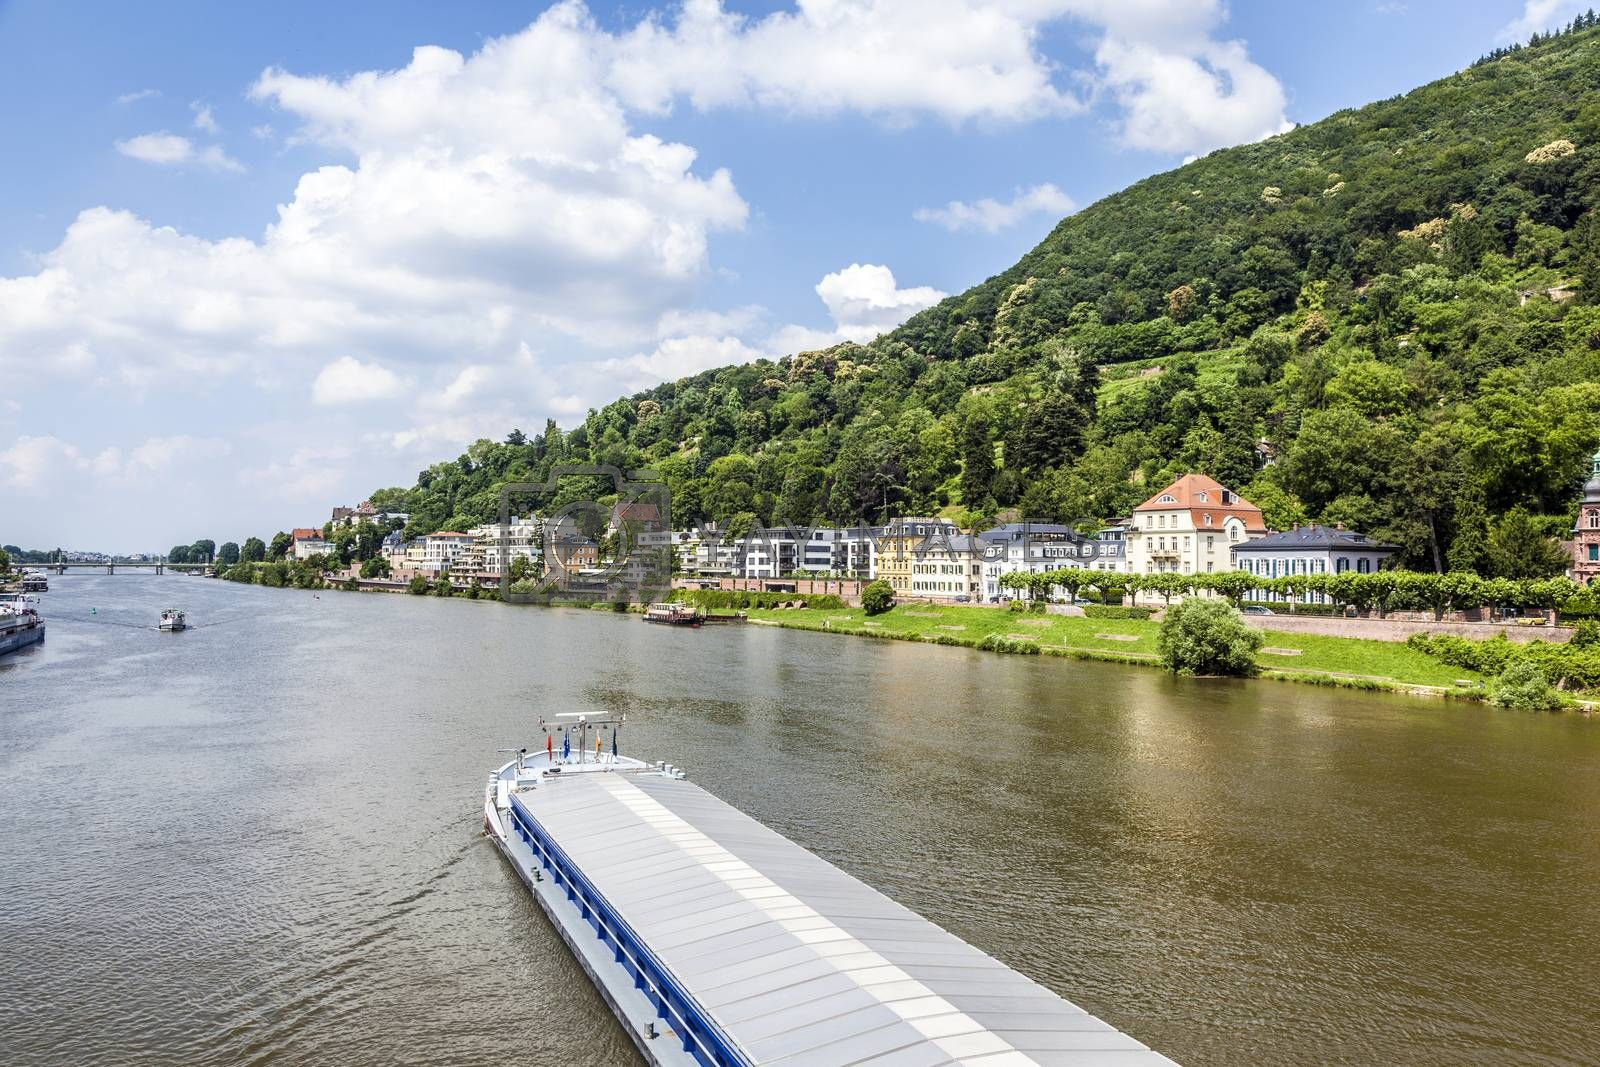 HEIDELBERG, GERMANY - JULY 6, 2013: freight ship Aristo at the river Neckar  in Heidelberg, Germany. Freight ships on scenic Neckar River transport goods since centuries.